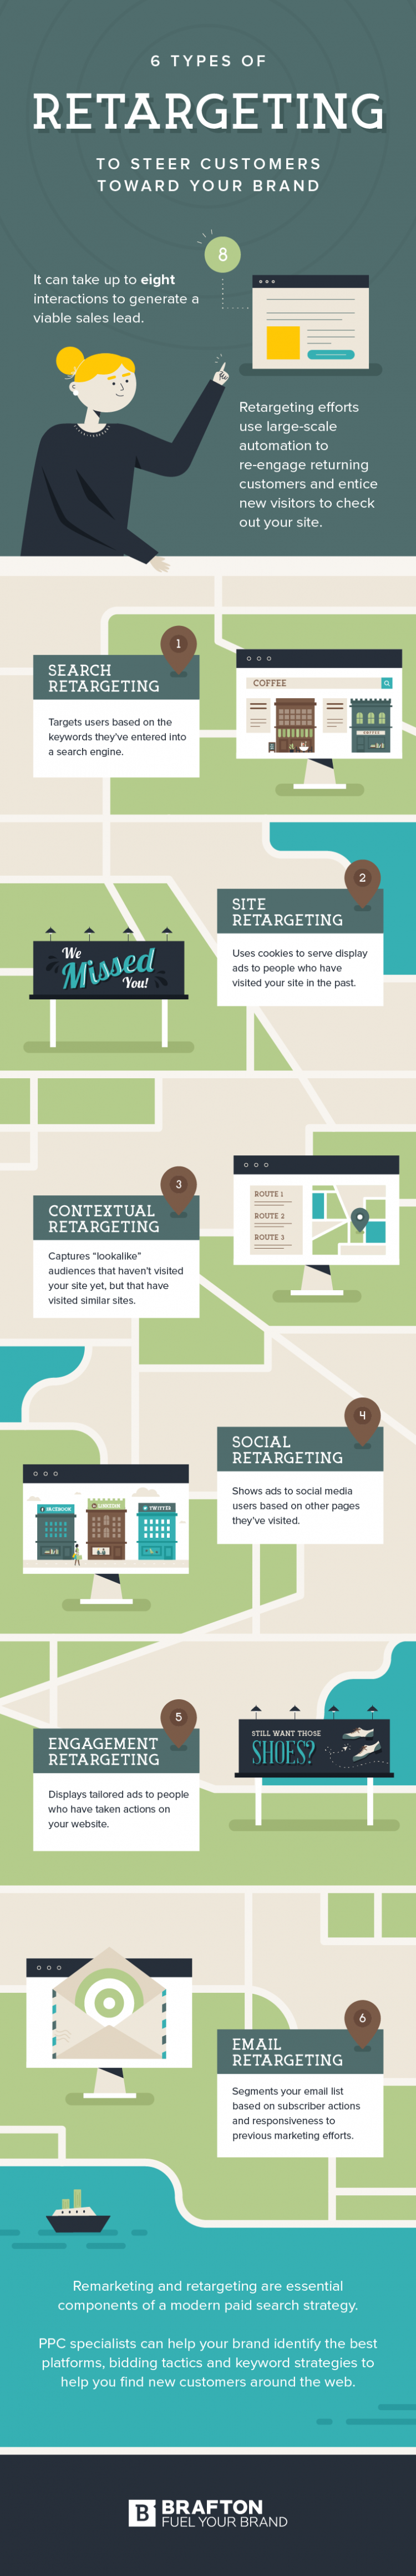 6 types of retargeting: search retargeting; Site Retargeting; E-mail retargeting; contextual retargeting; social retargeting; Engagement retargeting